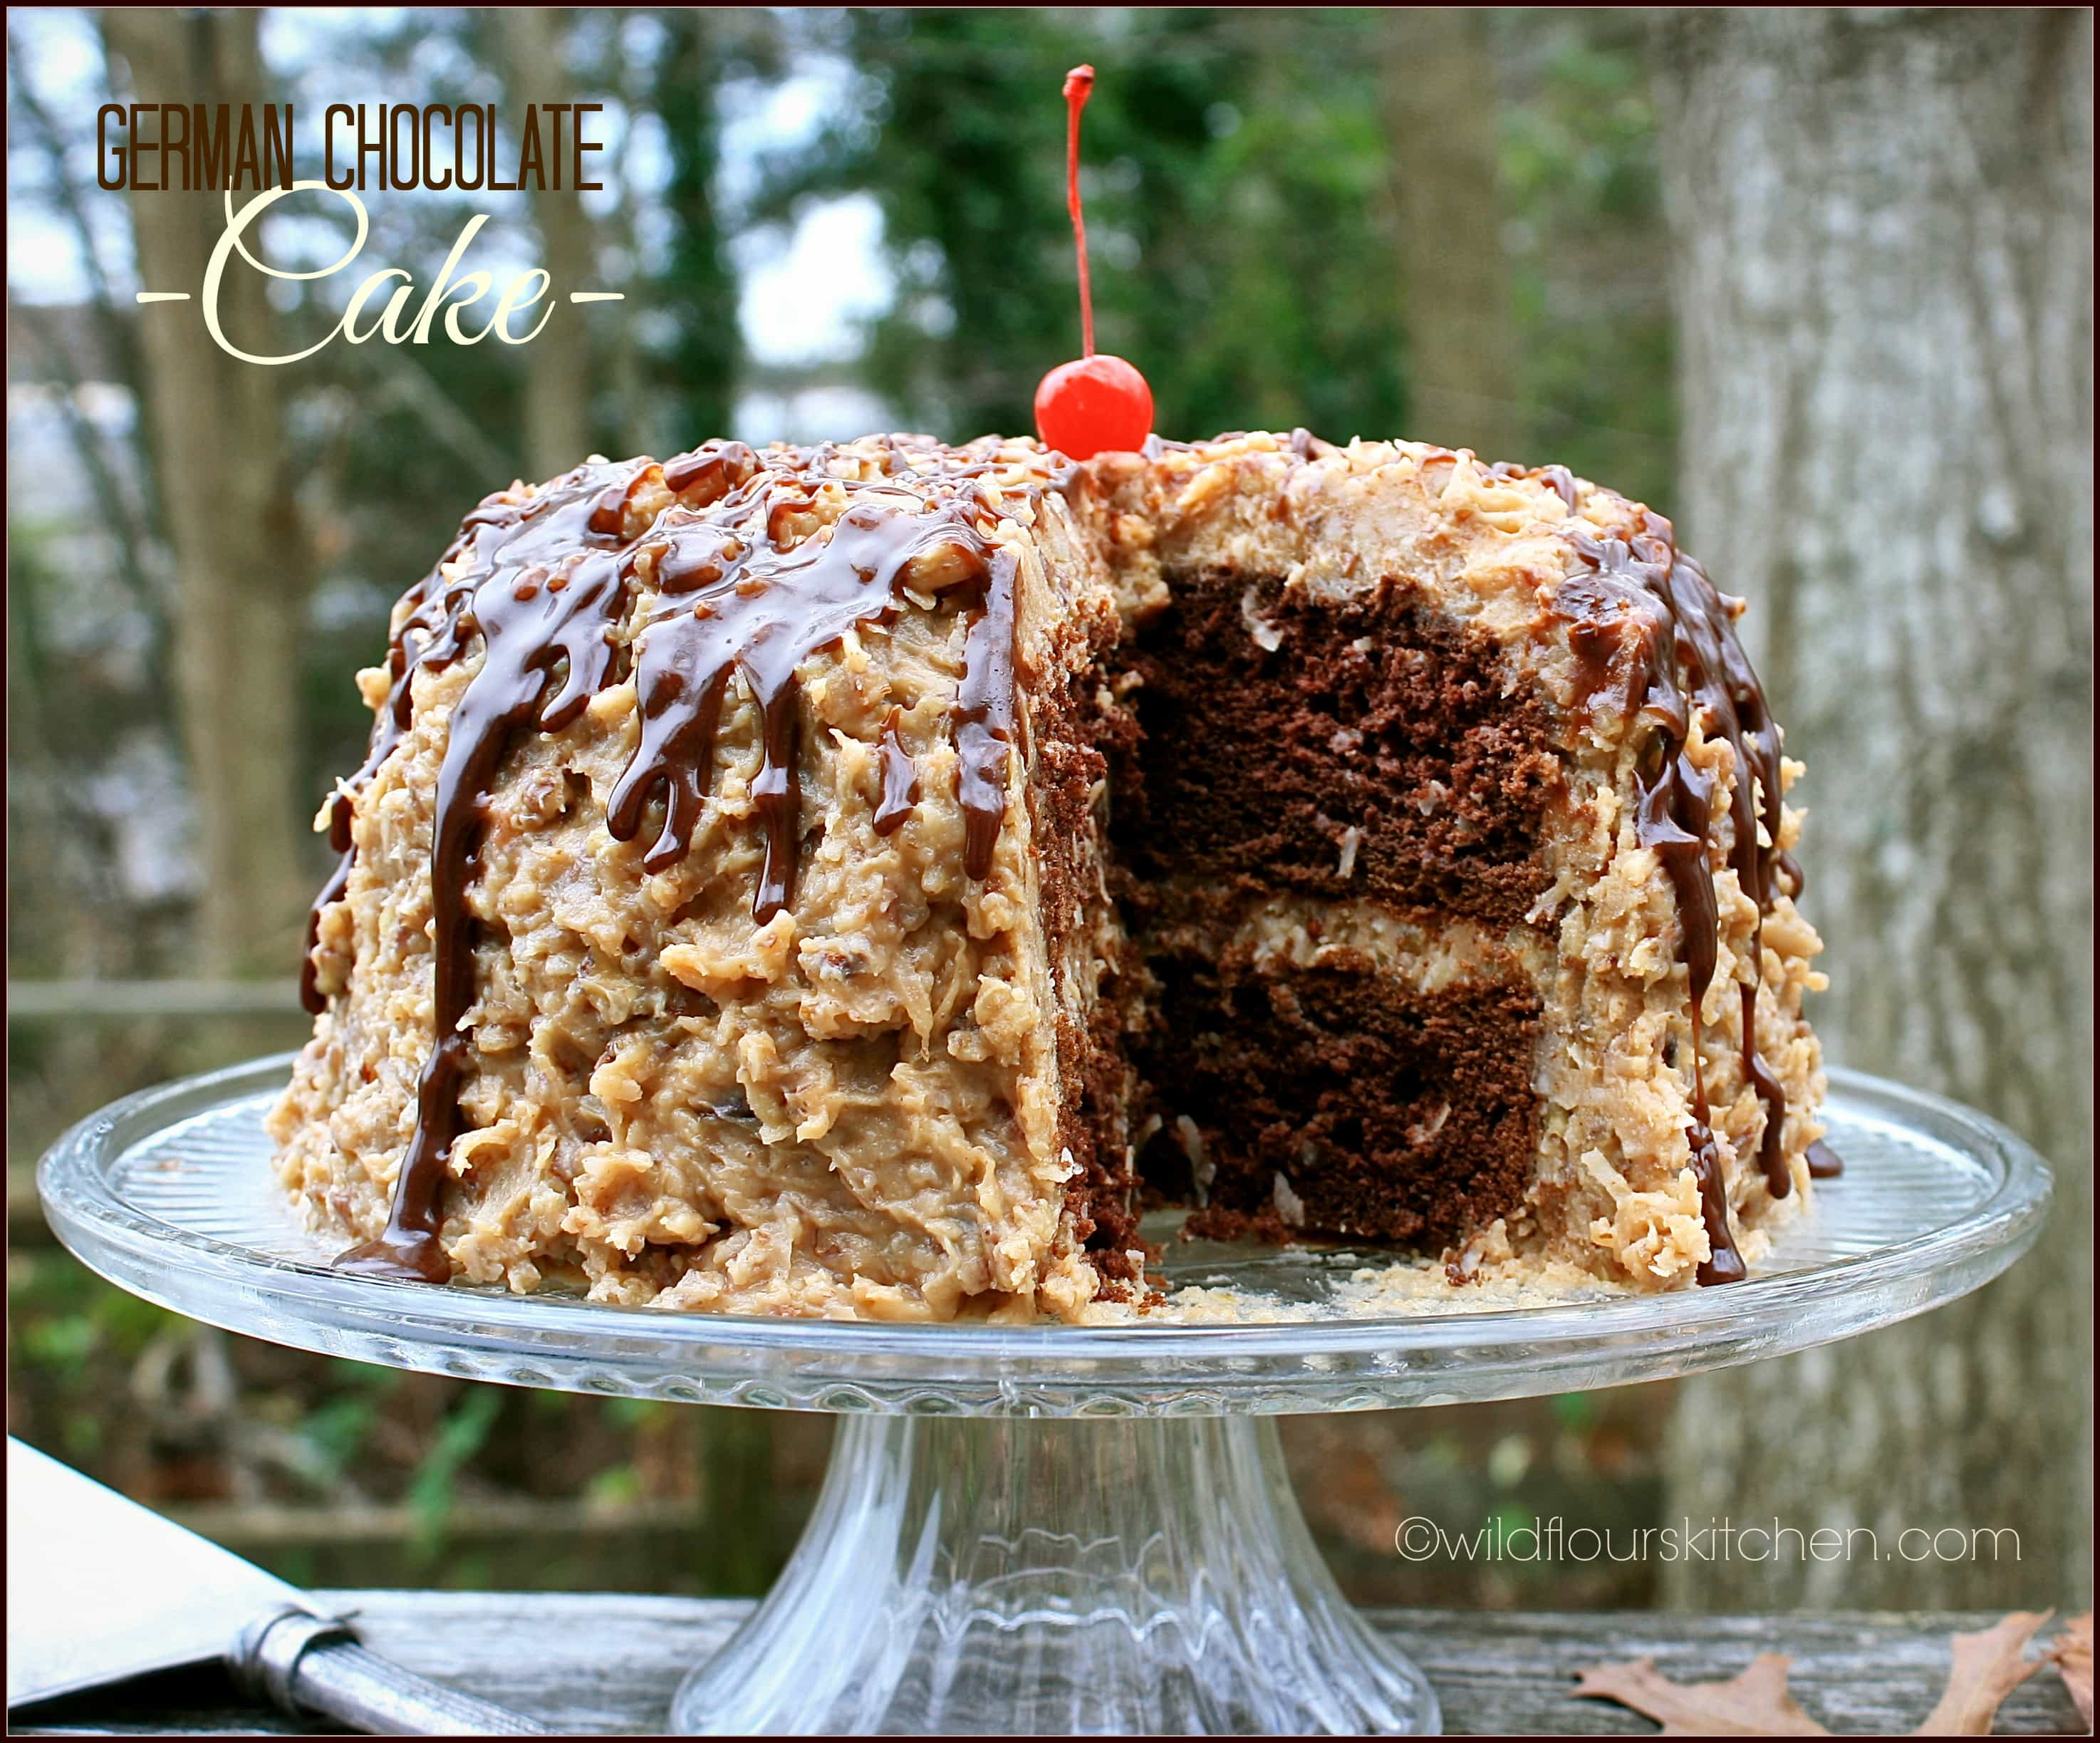 KickedUp German Chocolate Cake From a Mix with Homemade Coconut